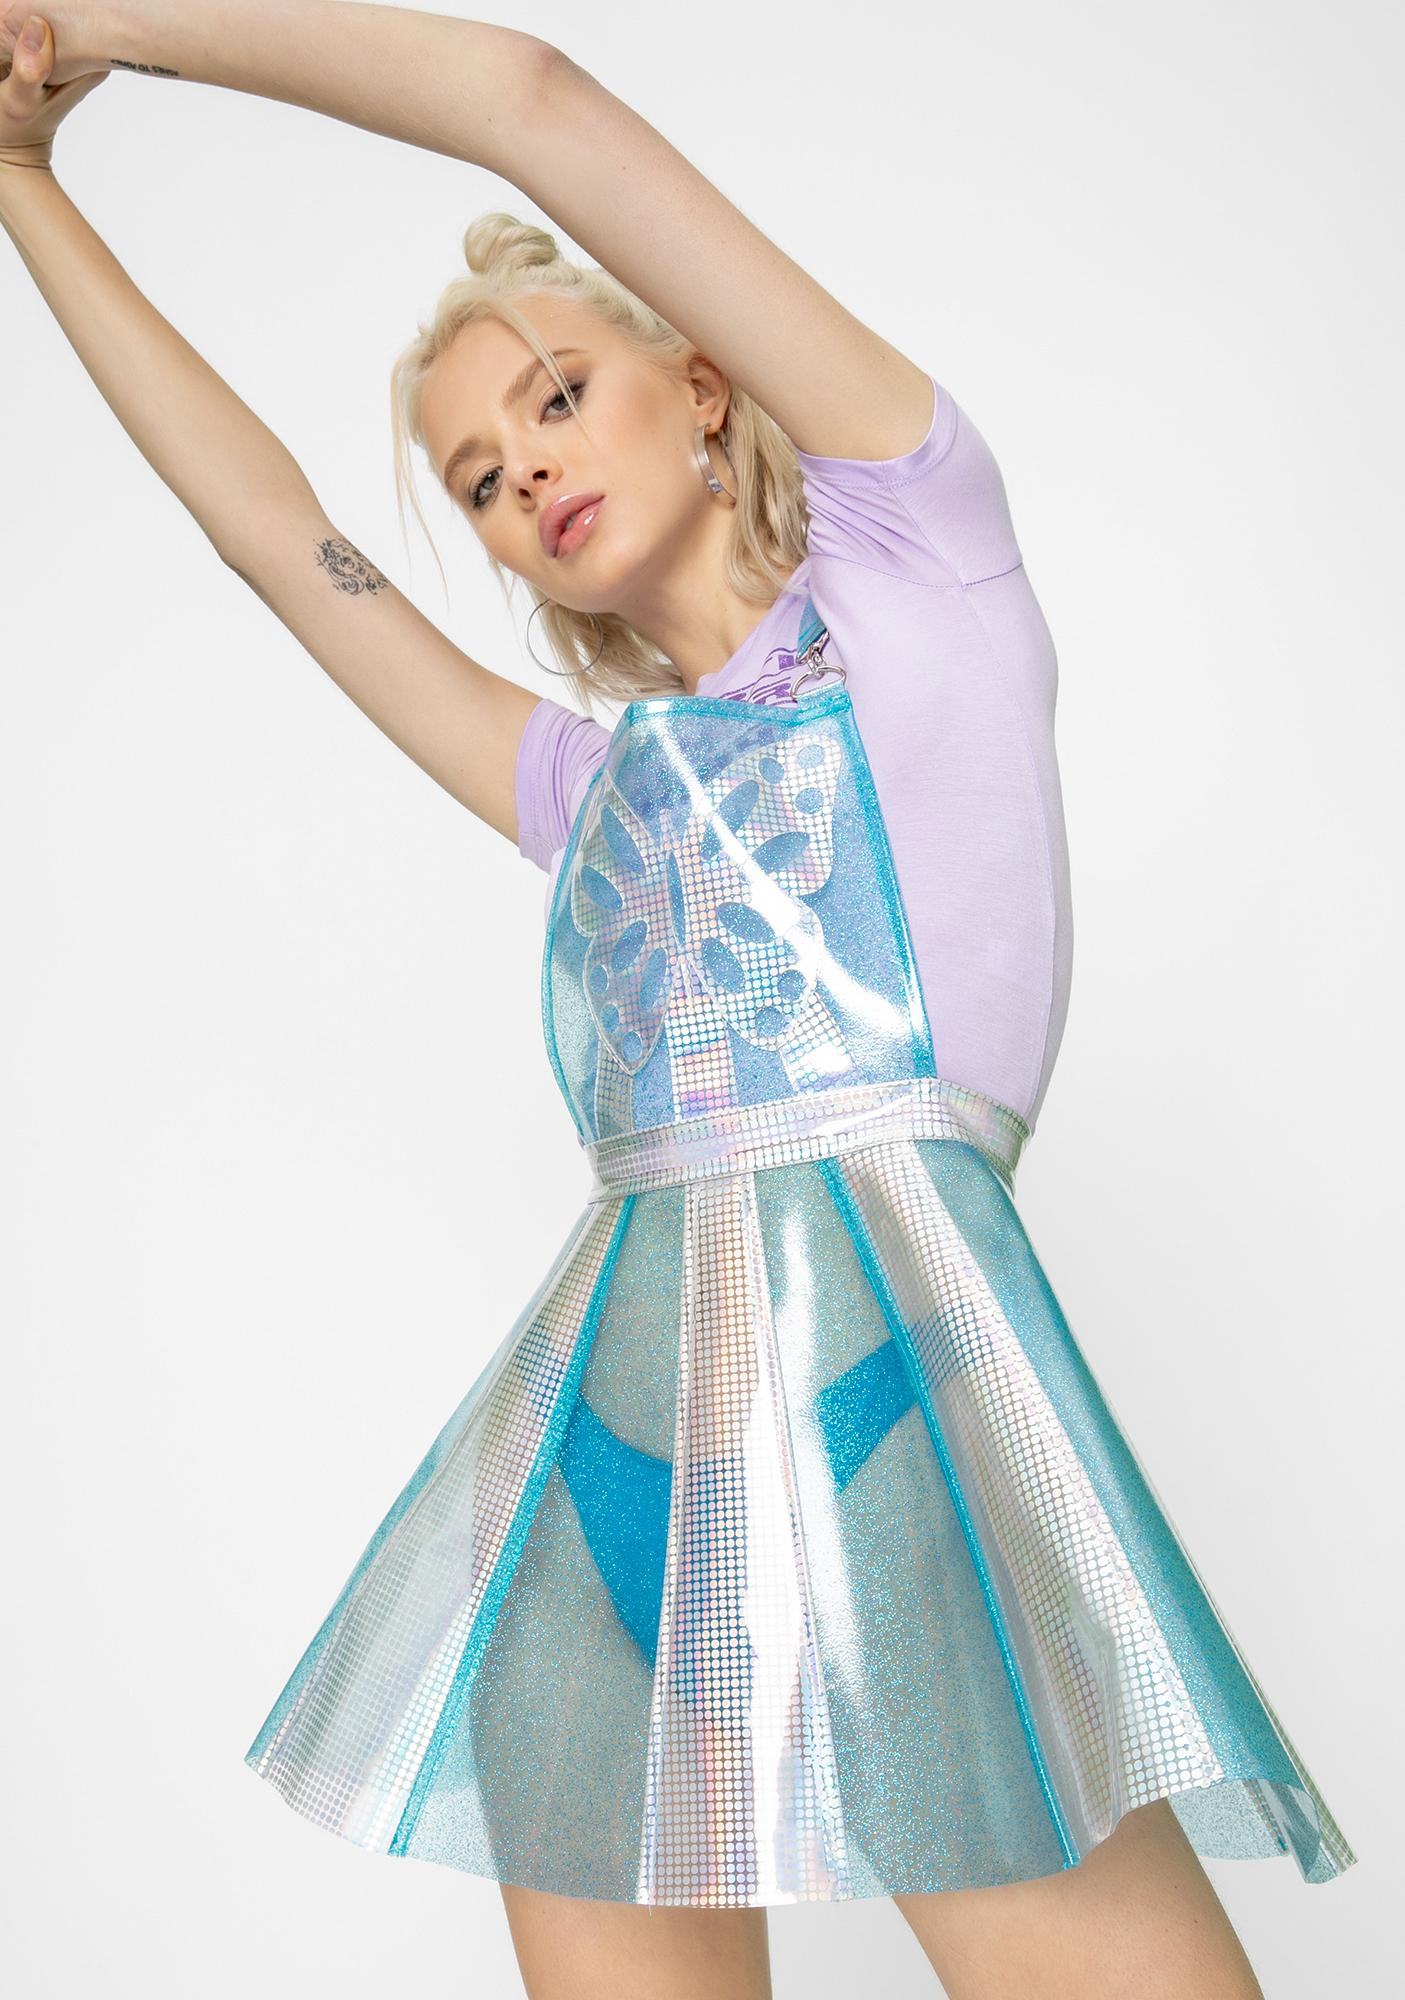 Club Exx Pixie Gurl Hologram Overall Dress